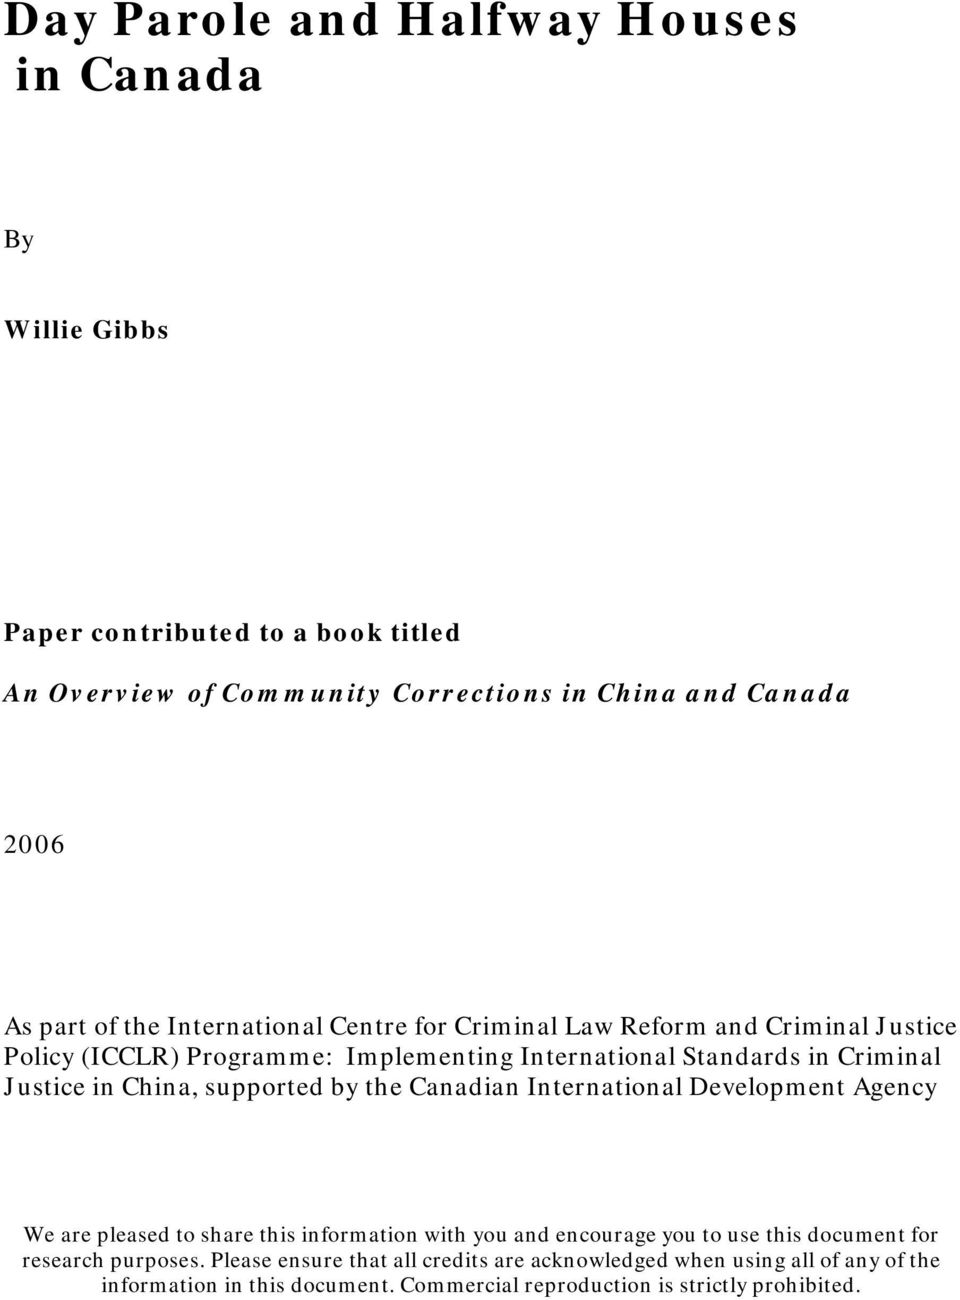 international criminal court research paper Questia, your online research library and paper writing resource, contains thousands of scholarly articles and books about international law international law, or law of nations, encompasses all activity regarding national relations from agreements, treaties, protocols, customs, and other bodies of conduct, international law.